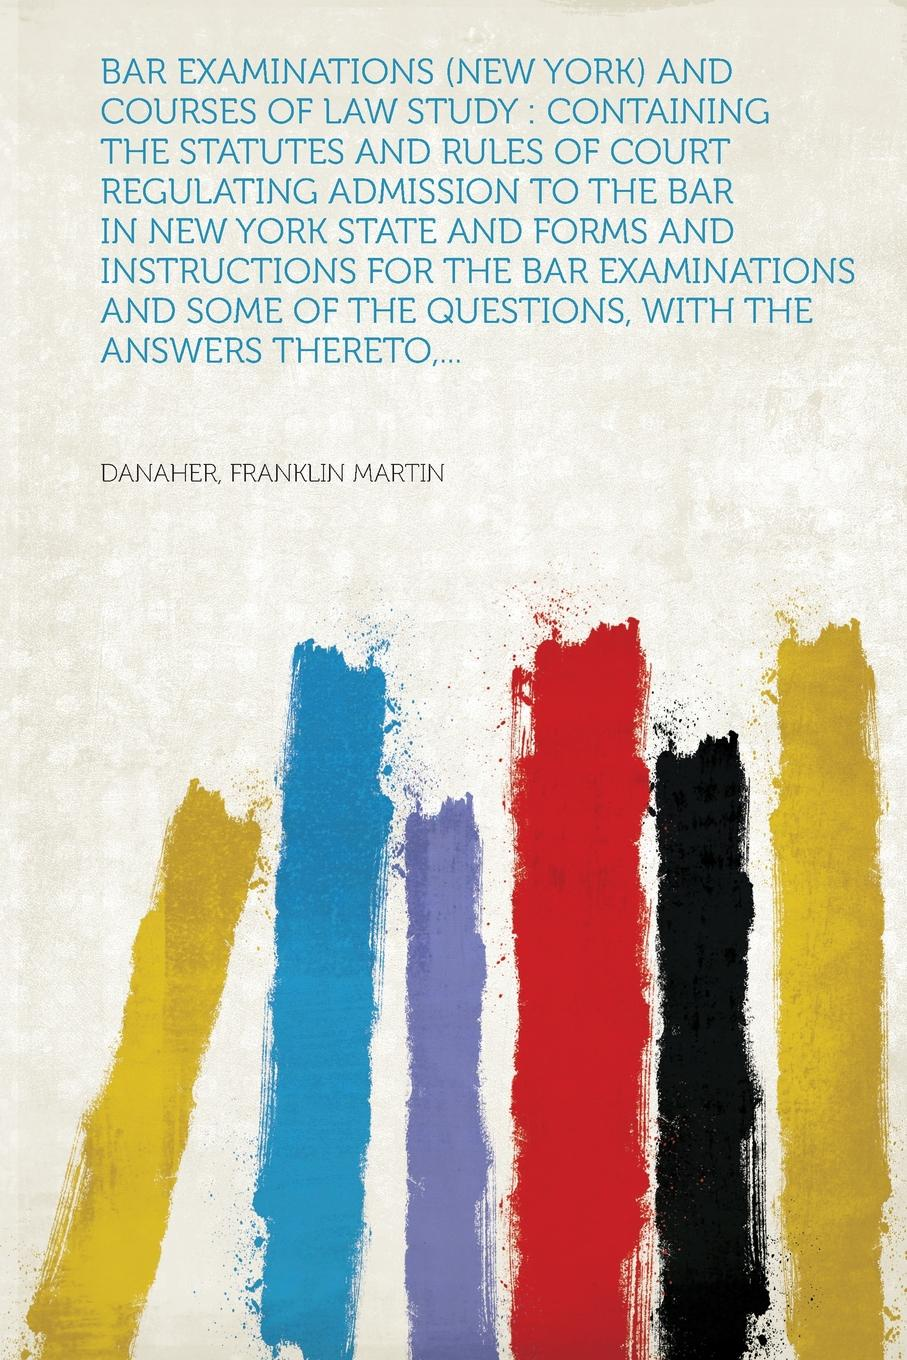 где купить Danaher Franklin Martin Bar Examinations (New York) and Courses of Law Study. Containing the Statutes and Rules of Court Regulating Admission to the Bar in New York State and Forms and Instructions for the Bar Examinations and Some of the Questions, With the Answers Ther... по лучшей цене